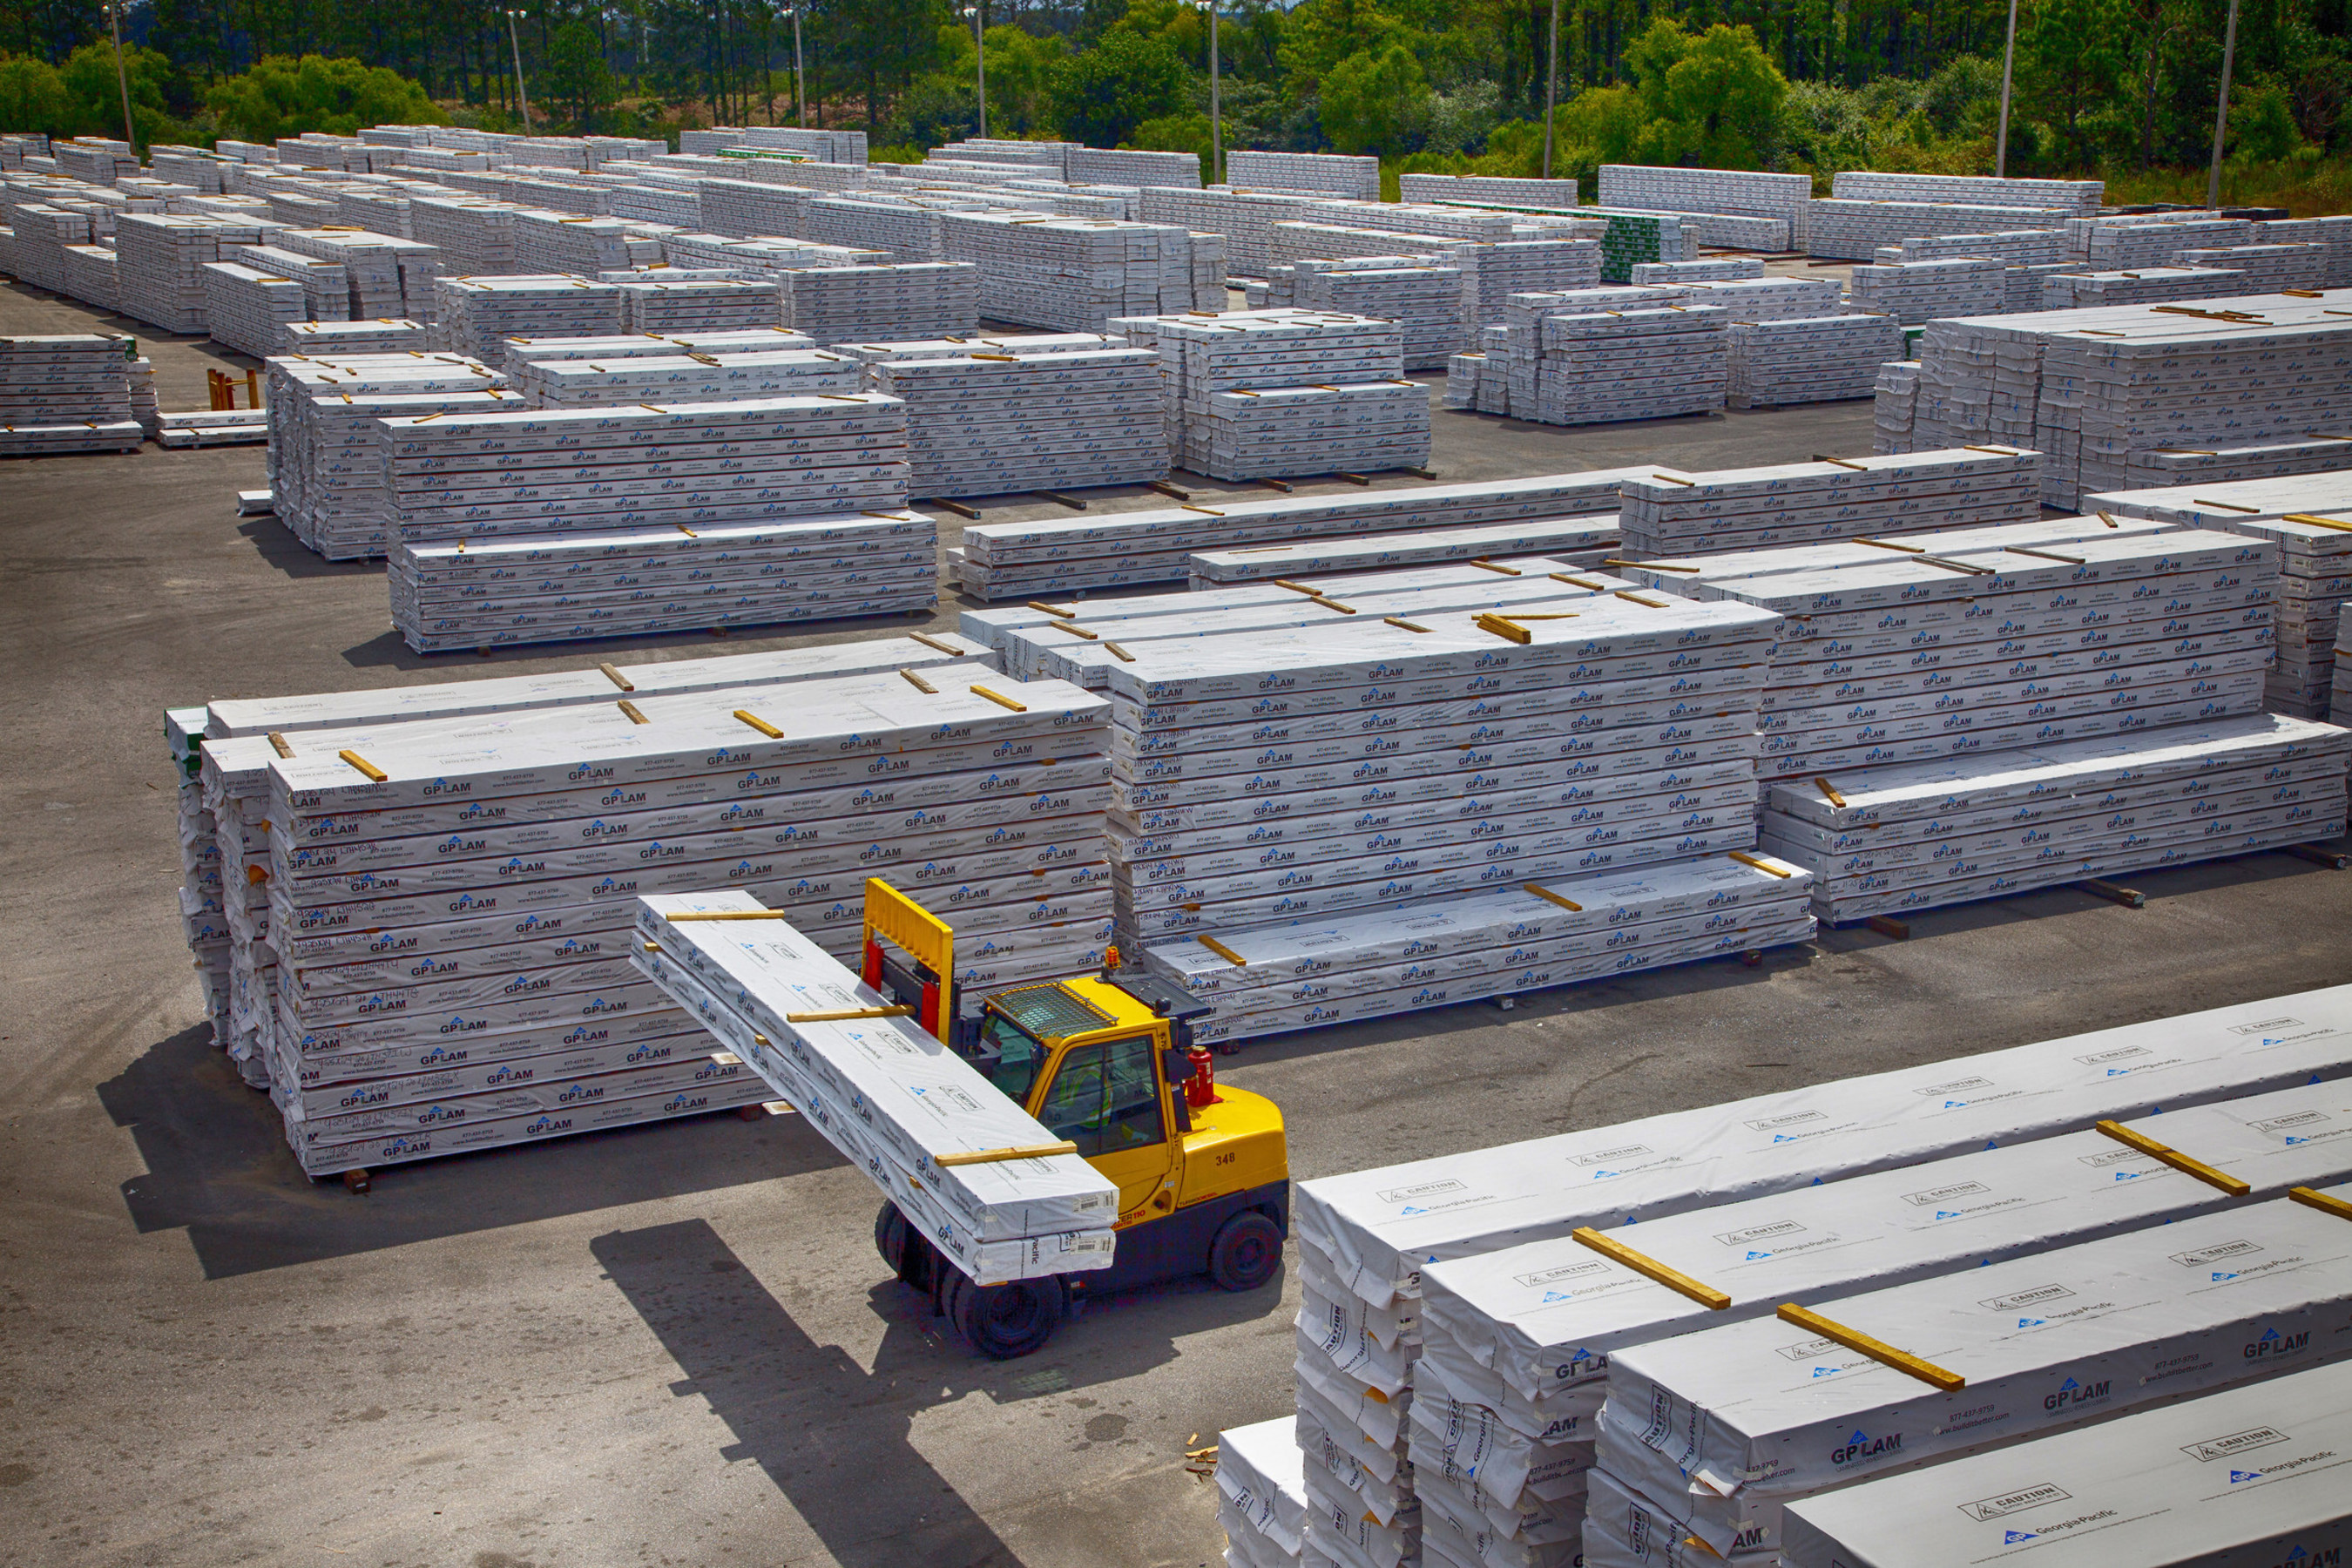 Georgia-Pacific today announced an investment of approximately $6 million at its Thorsby, Alabama, engineered lumber operations to expand production capacity of laminated veneer lumber.